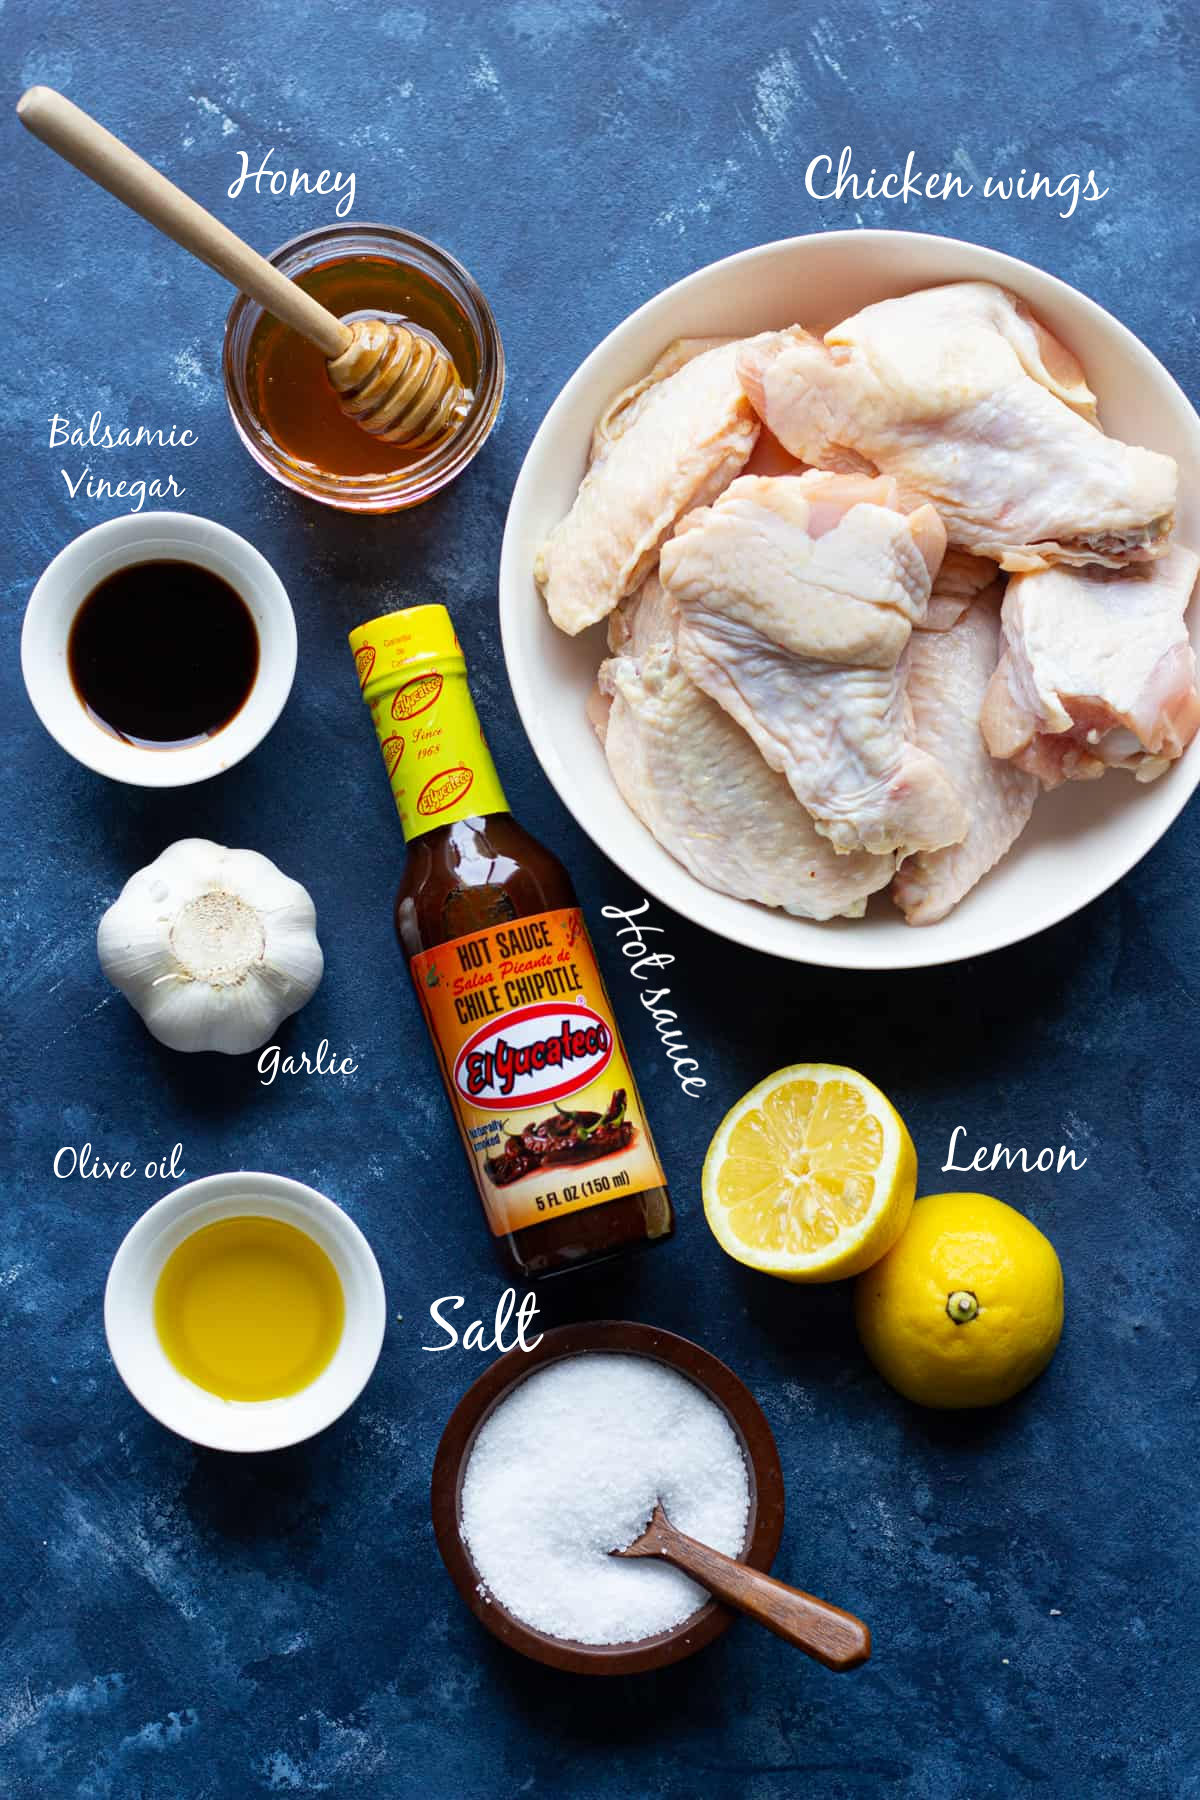 Ingredients to make grilled chicken wings are honey, balsamic, lemon, hot sauce, salt, garlic and olive oil.